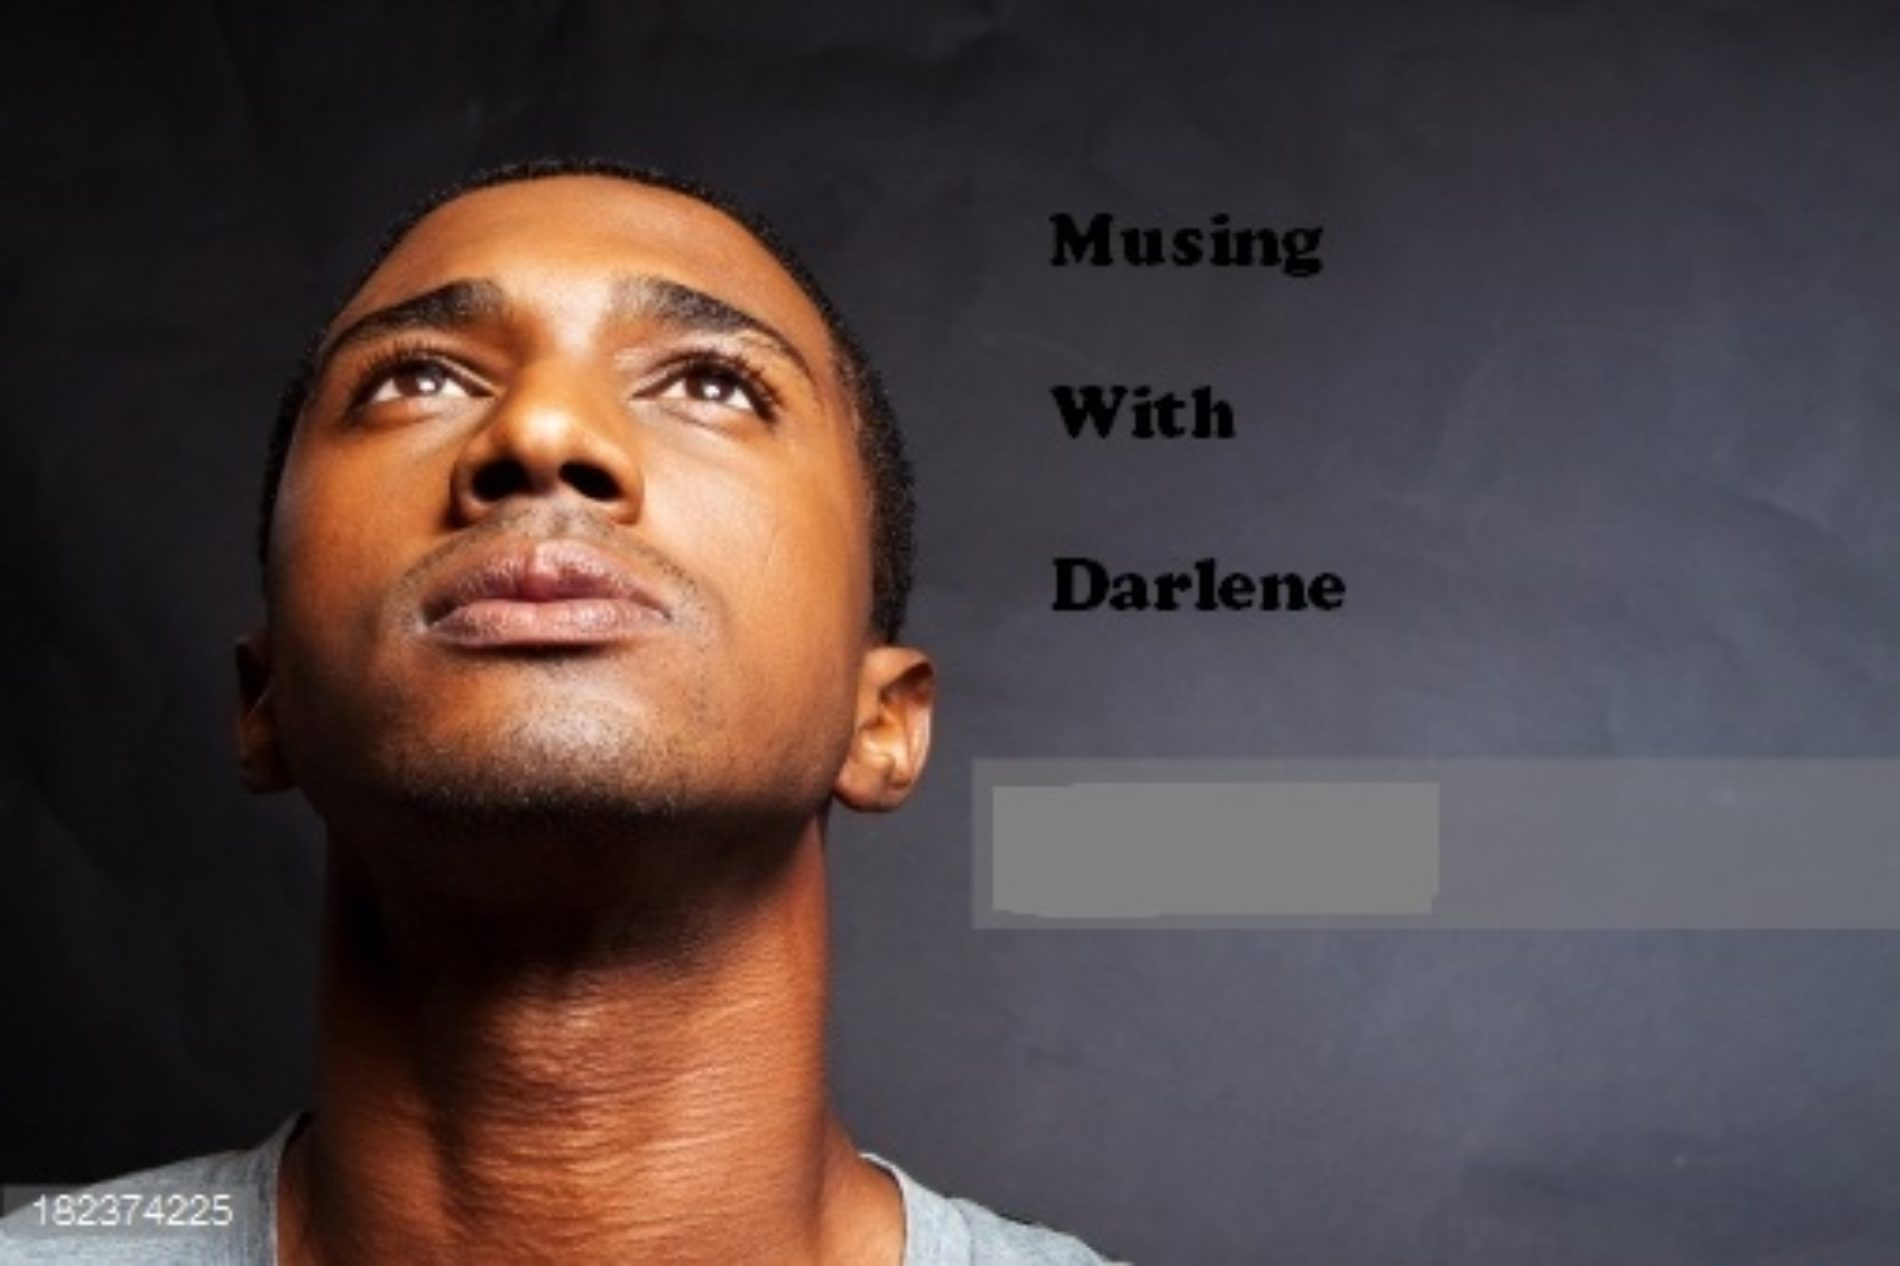 MUSING WITH DARLENE: I AM ANGRY